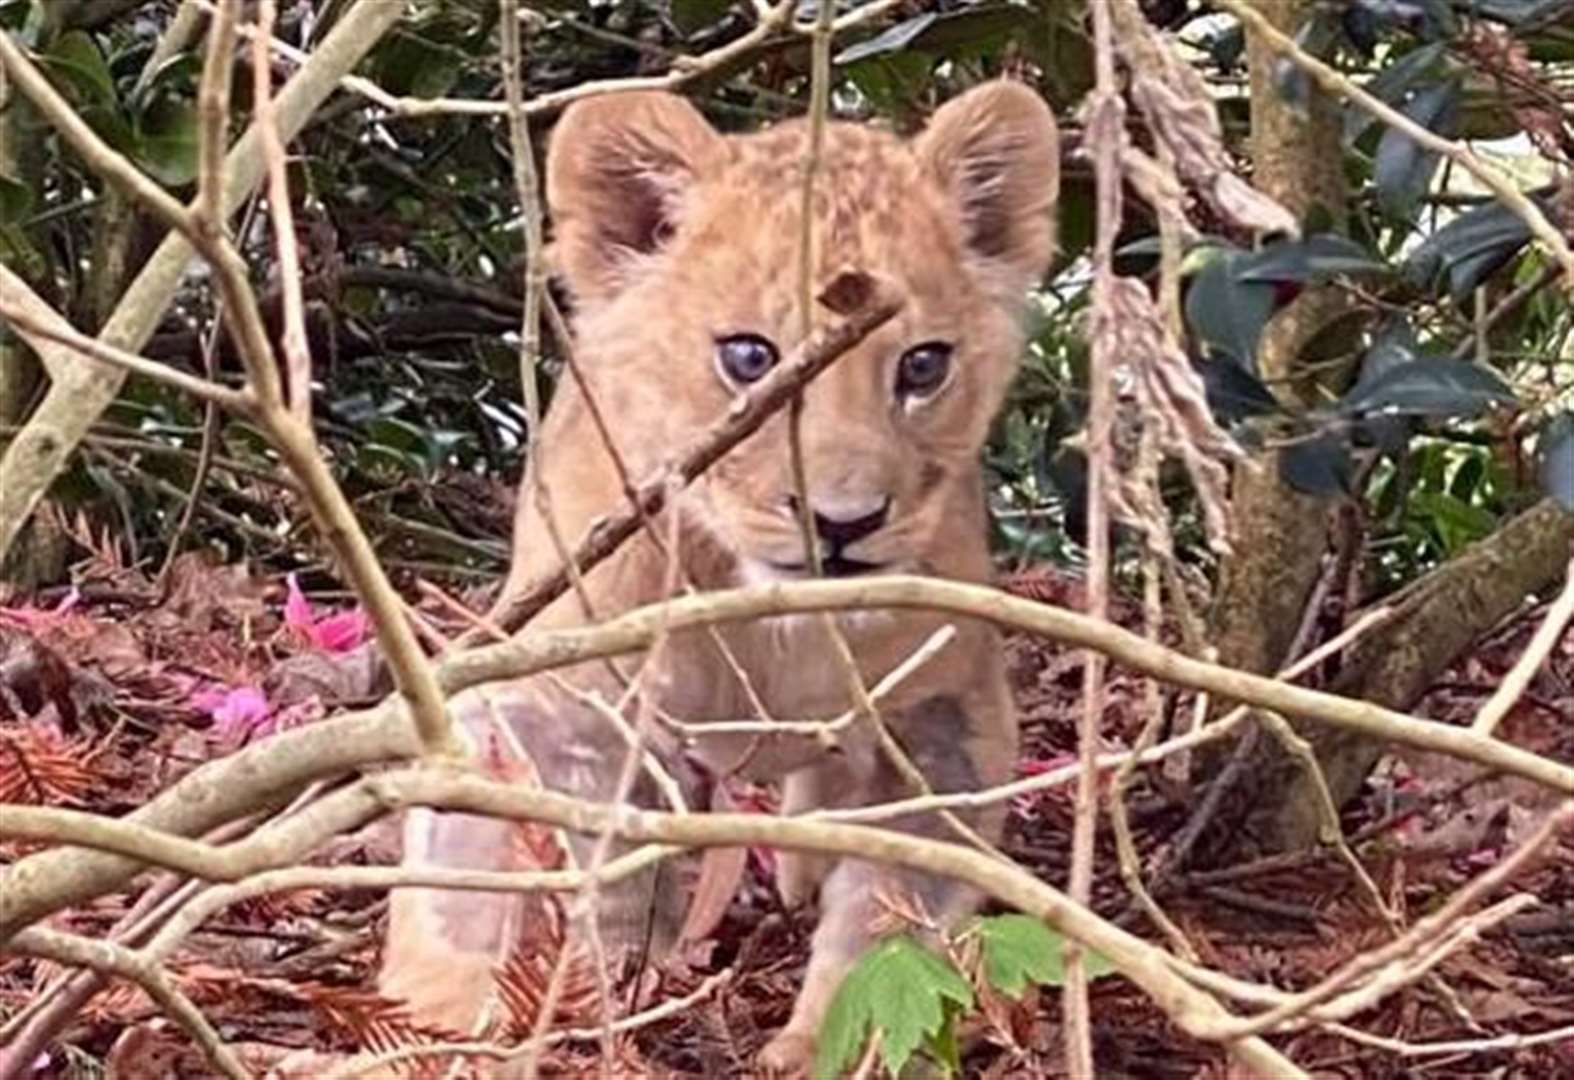 Lion cub under care of specialist team